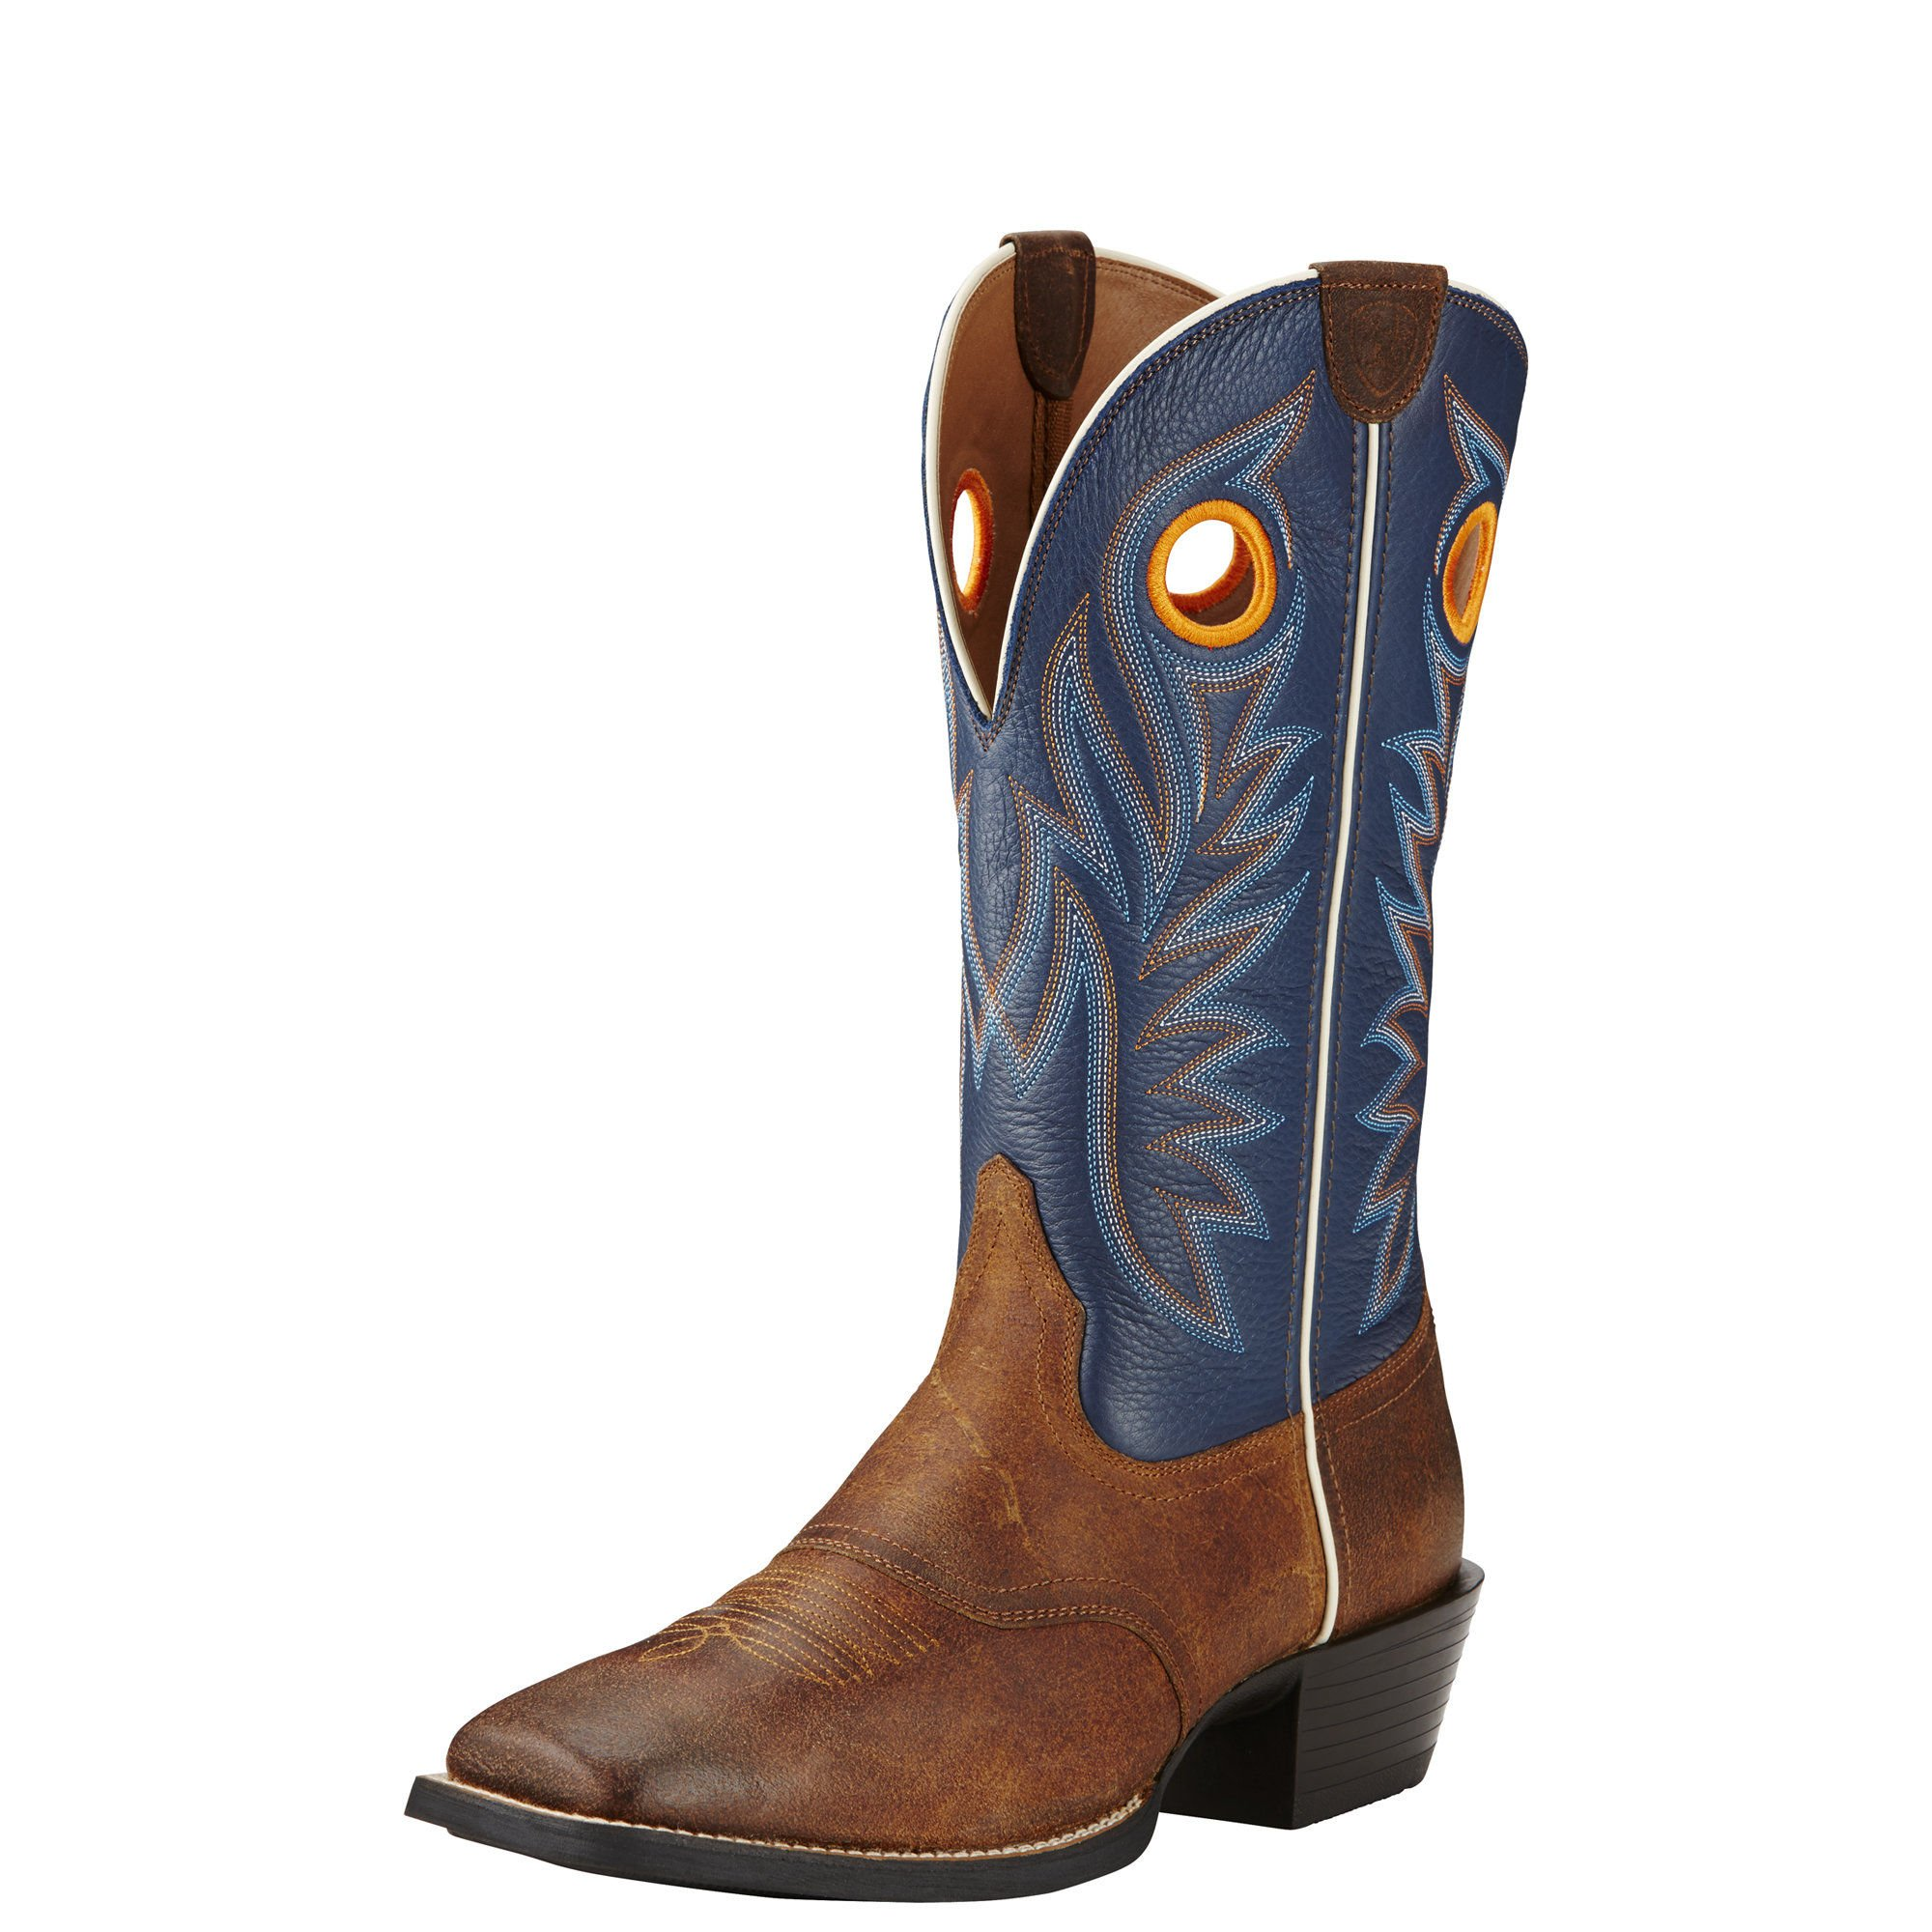 Ariat Men's Sport Outrider Western Cowboy Boot, Pinecone/Federal Blue, 8.5 D US